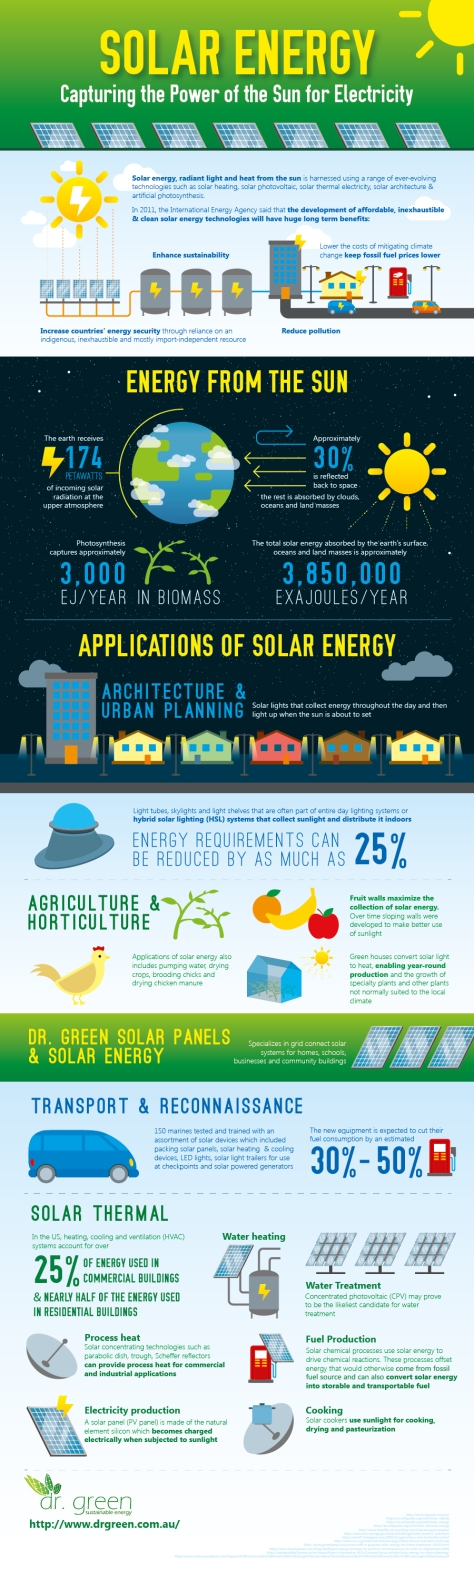 solar-energy-capturing-the-power-of-the-sun-for-electricity_52563eb78cced